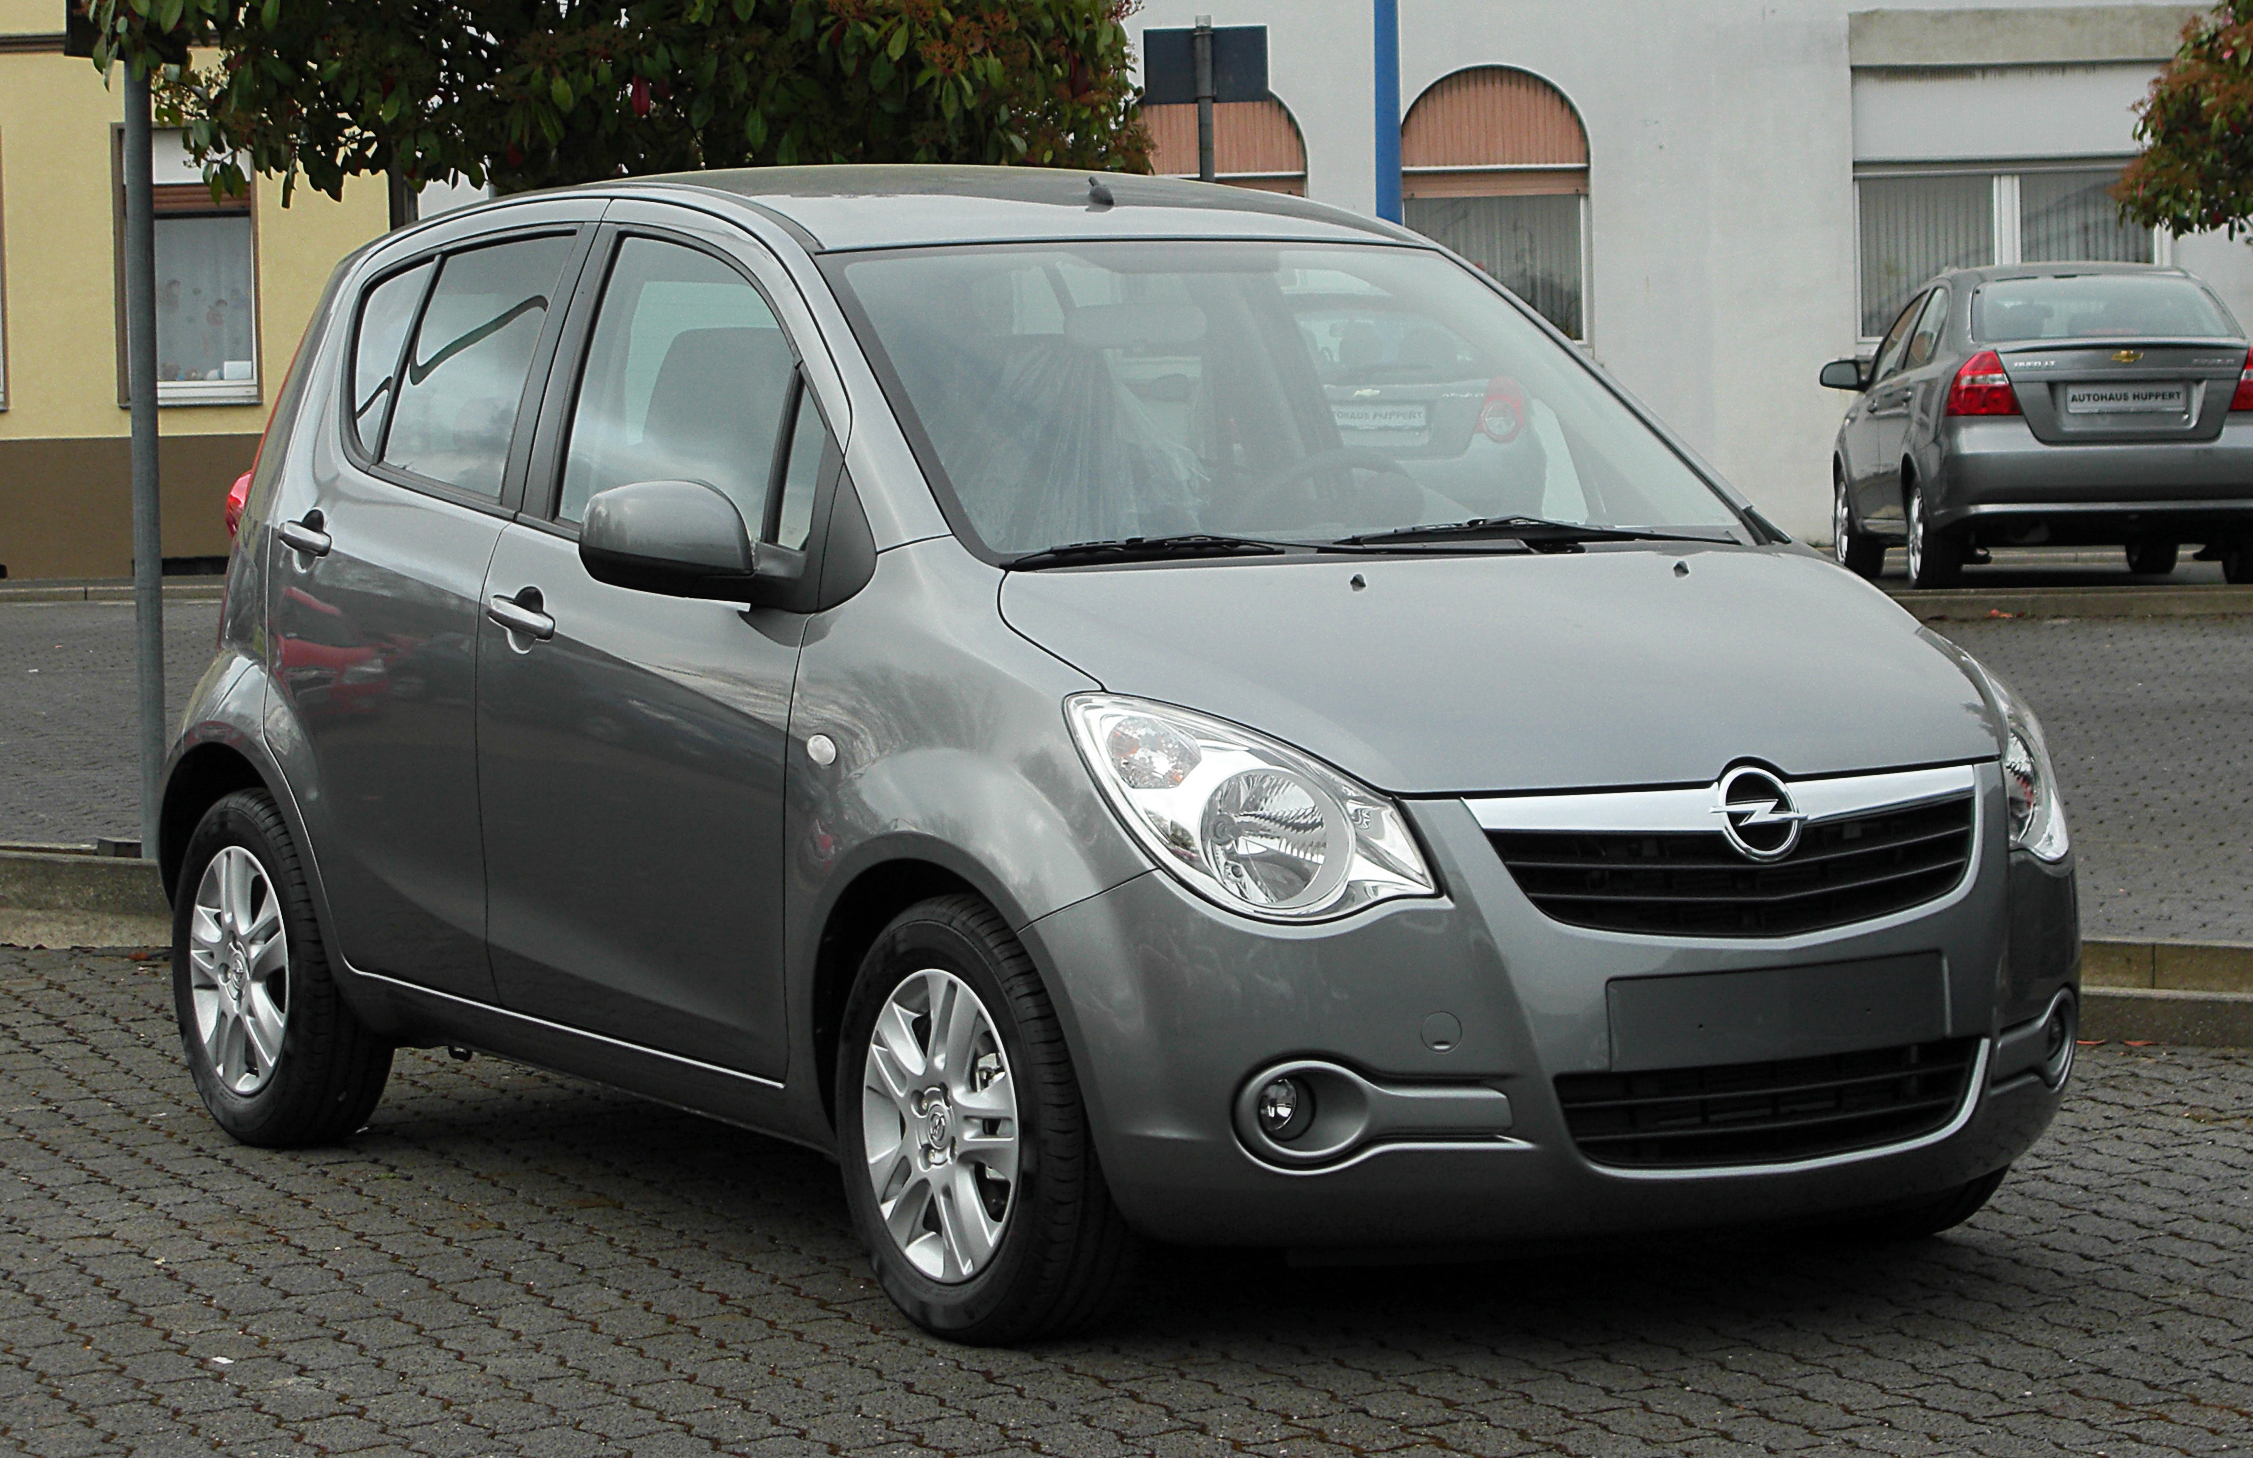 Opel Agila - Wikipedia, the free encyclopedia